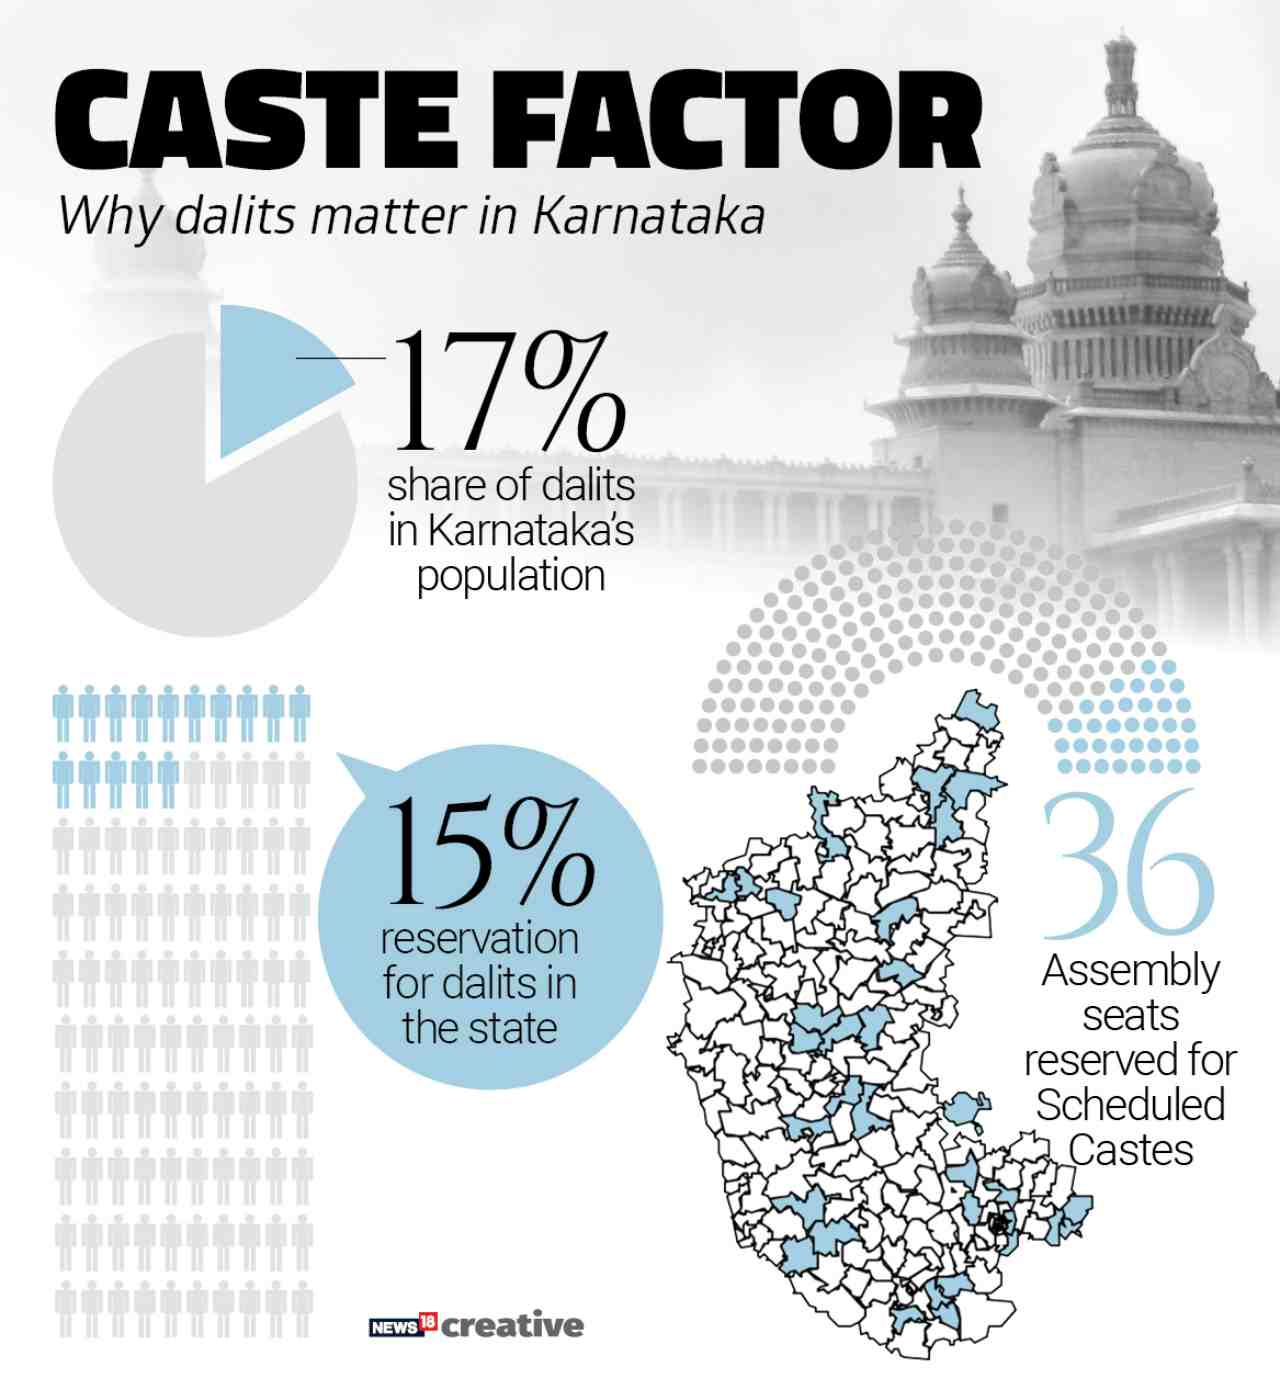 Caste Factor | Not unlike any other state of India, caste and religions play important role in the elections in Karnataka. One-sixth of the population is Dalit. Recently, the Siddaramaiah government accorded religion status to the Lingayat community which forms up to 17 percent of the population in the state.